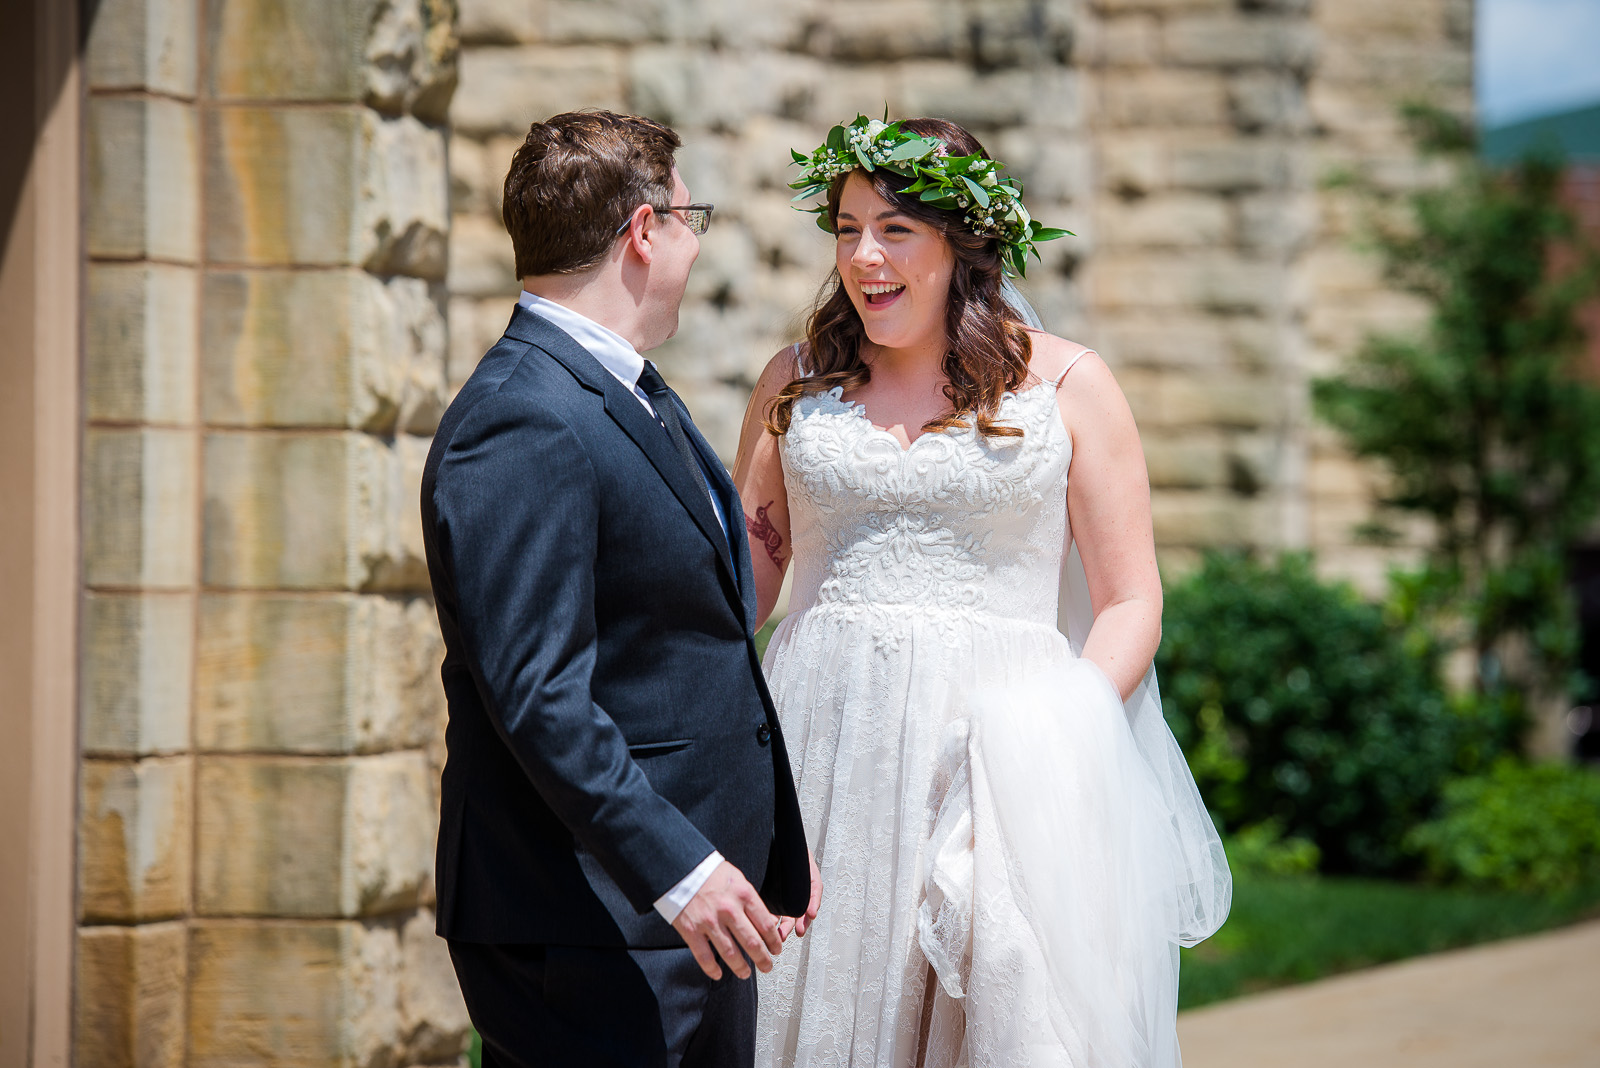 Eric_and_Christy_Photography_Blog_2018_Wed_moments-49